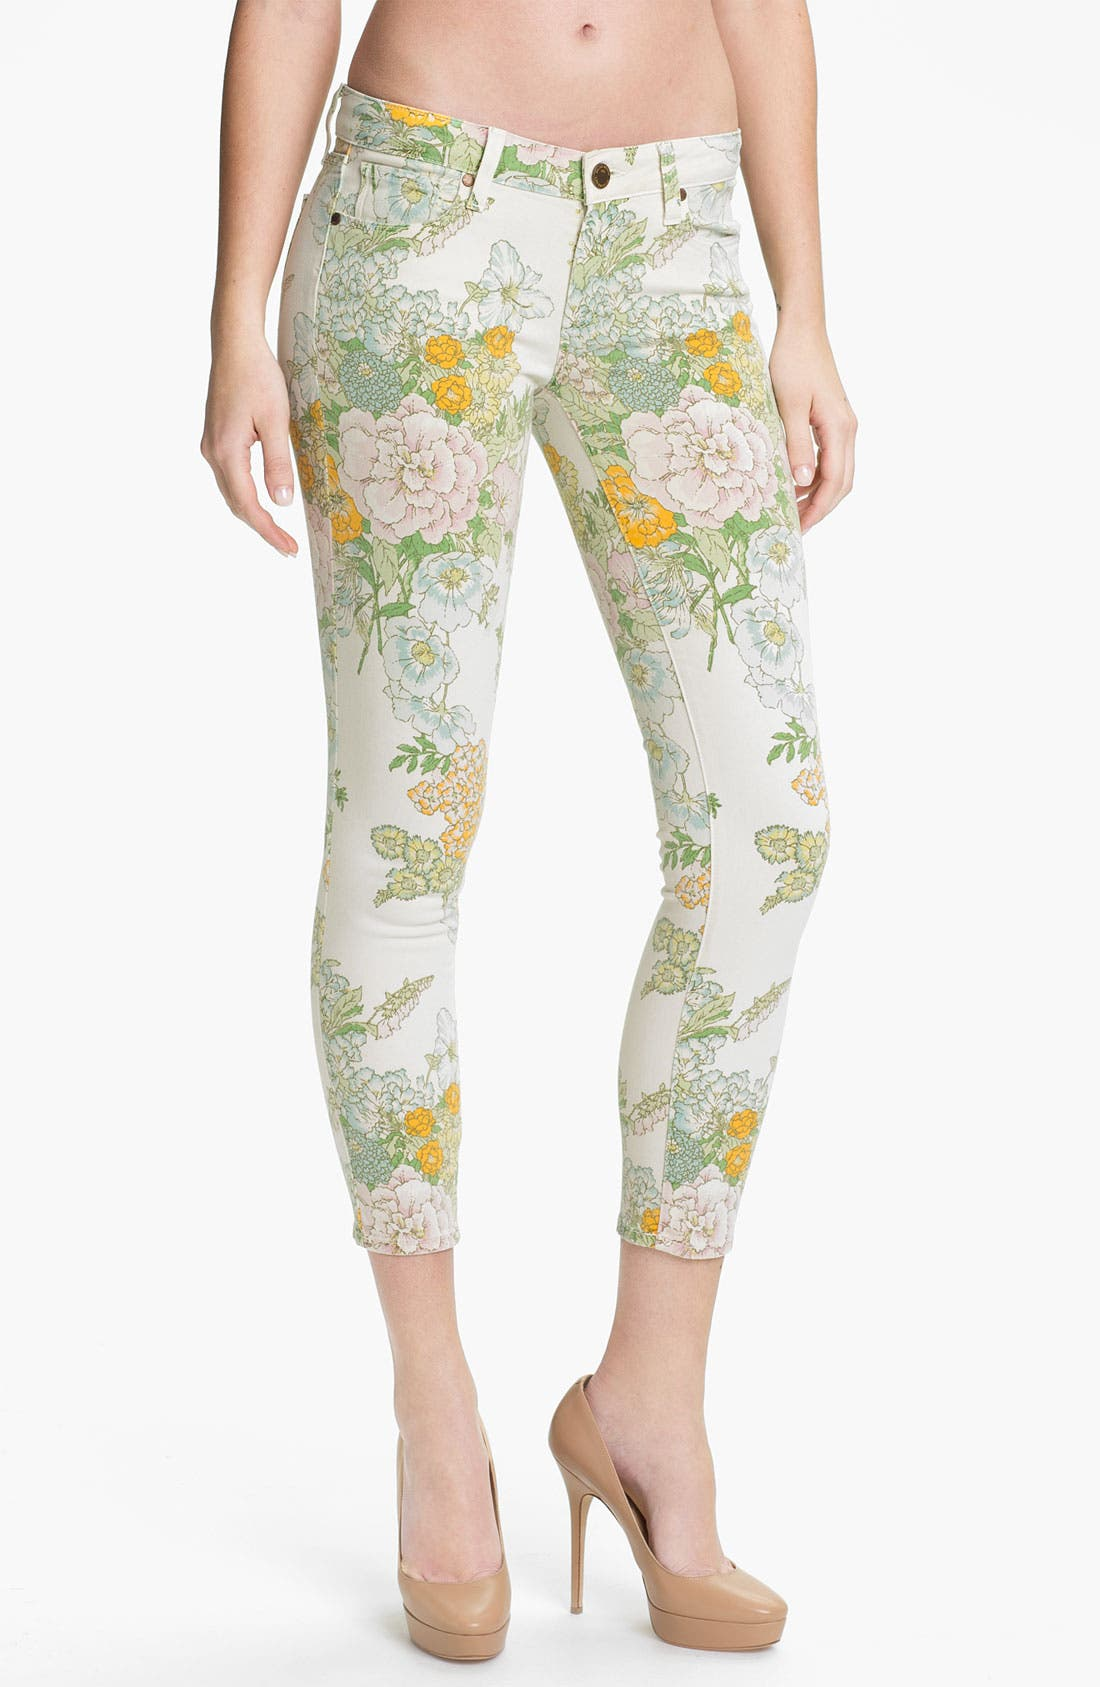 Alternate Image 1 Selected - Paige Denim 'Verdugo' Print Skinny Jeans (Flea Market Floral)